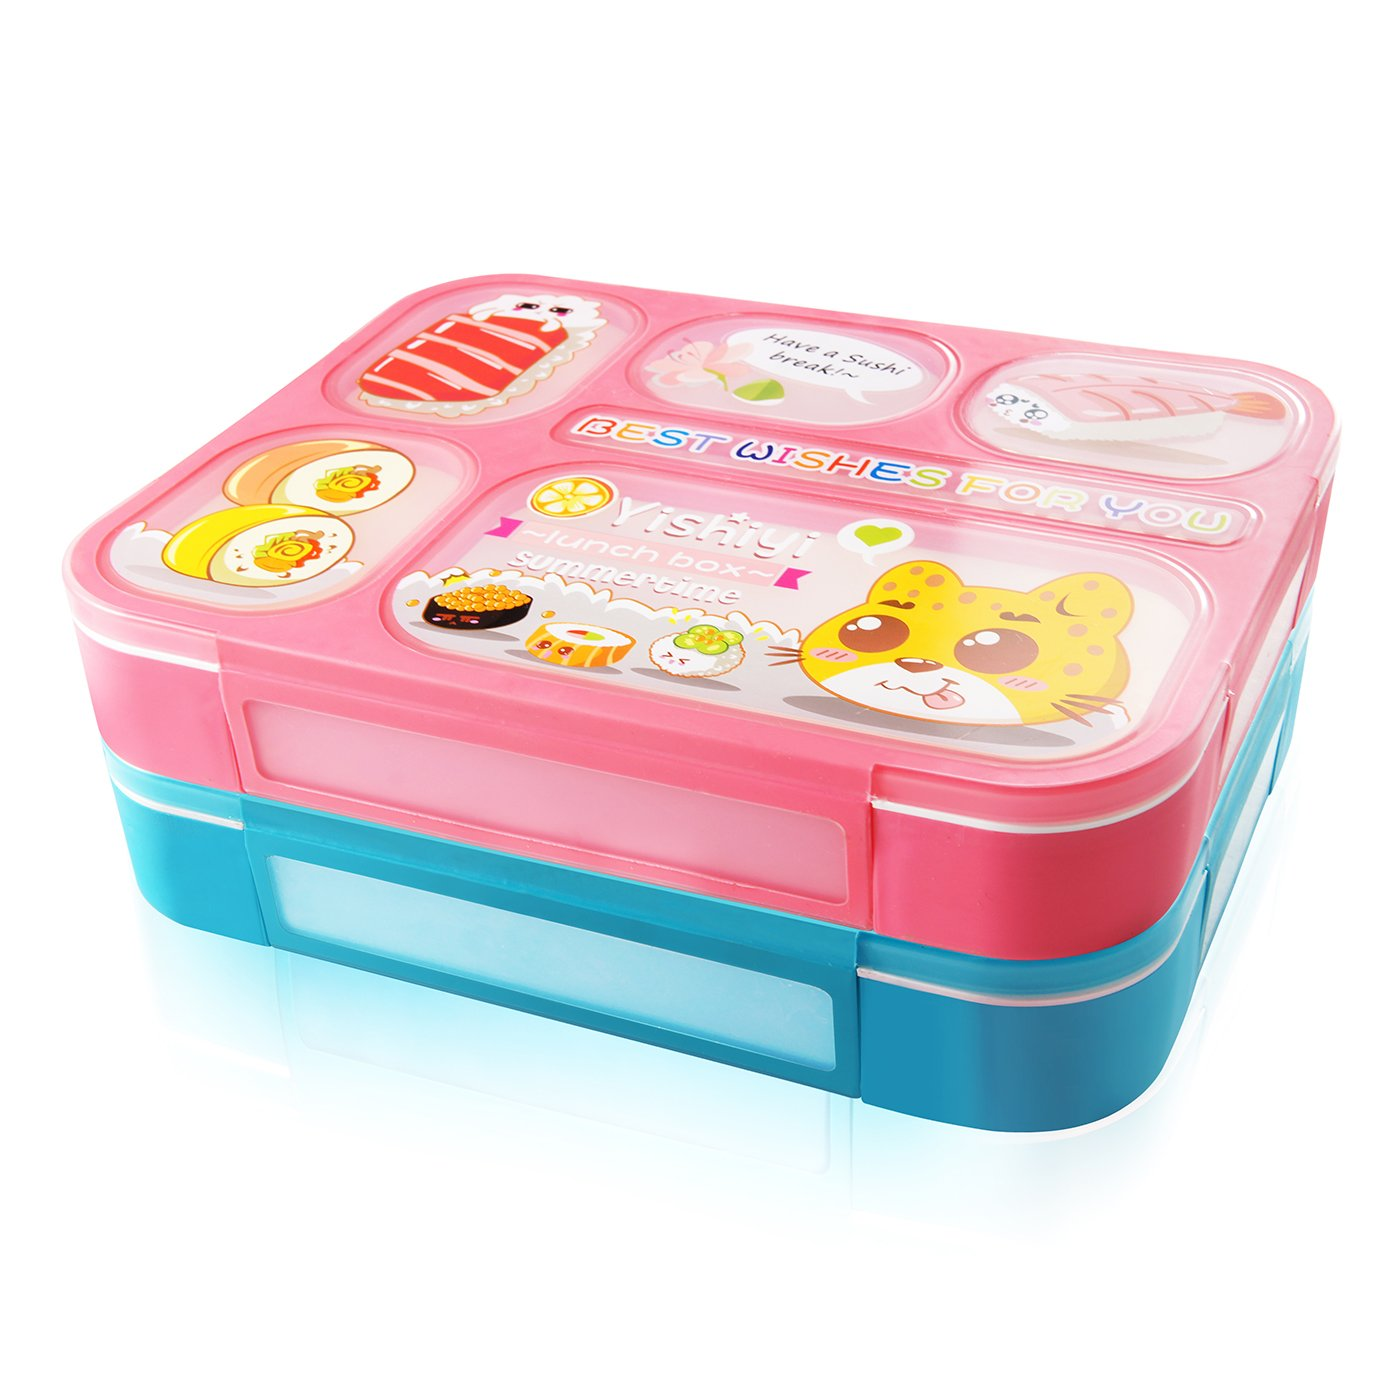 Microwave and Dishwasher-Safe Lunch Box with 6 Separate Sealing containers AckMond Lunch Bento Box 2 Pieces